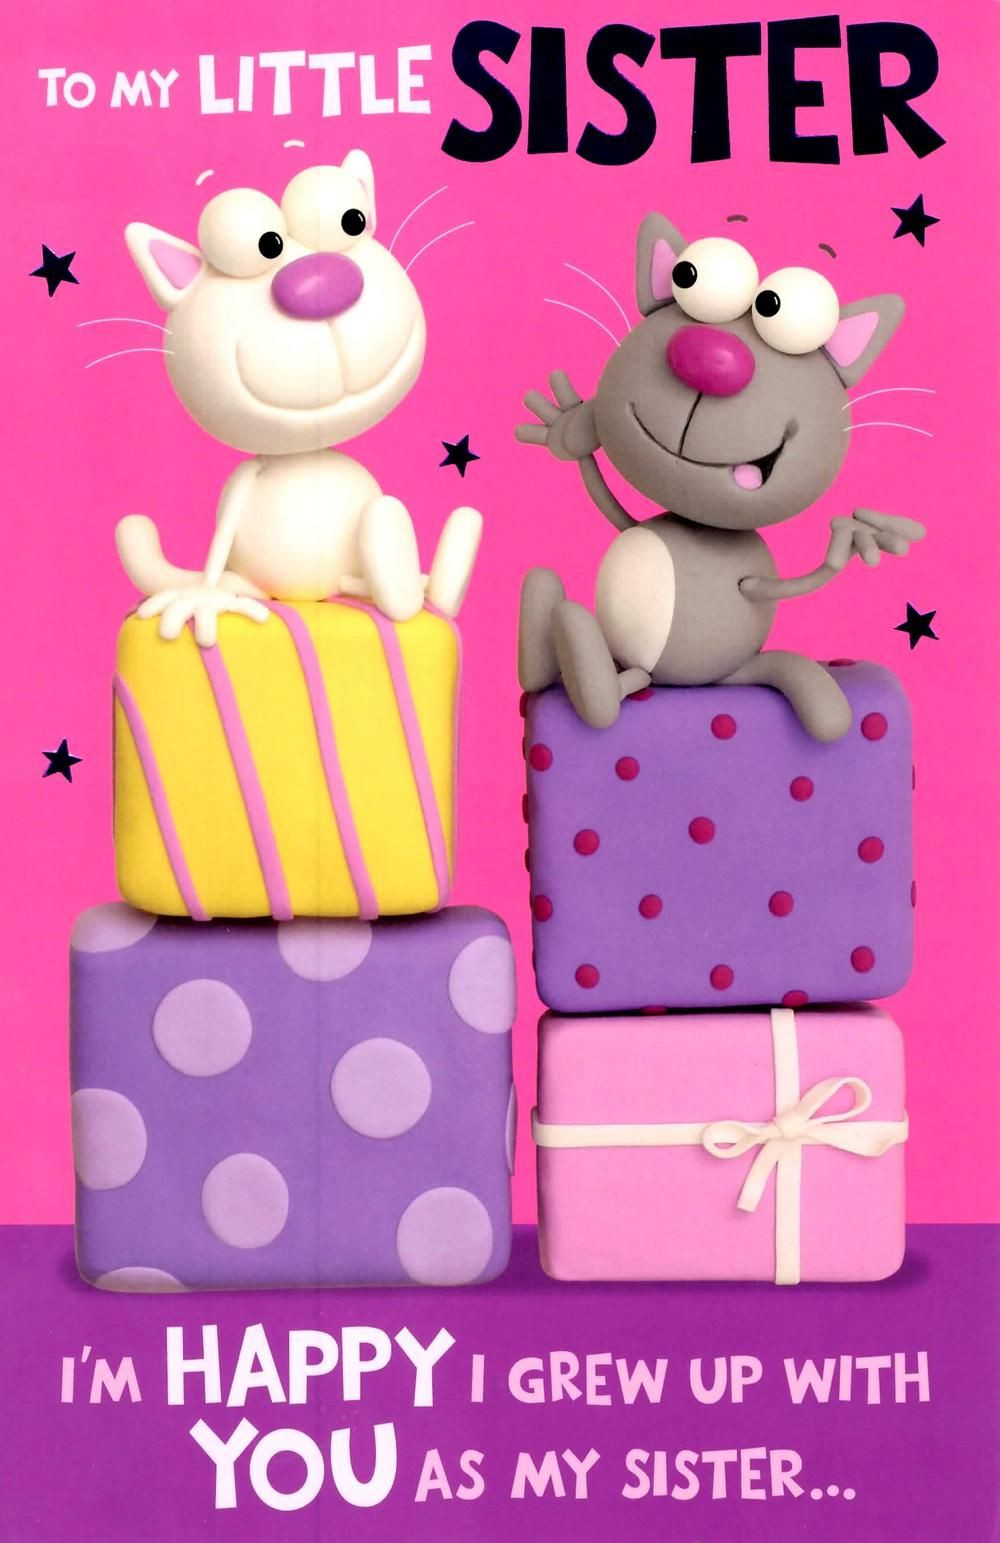 Best ideas about Funny Birthday Message For Sister . Save or Pin Happy birthday wishes for sister 11 1000×1543 Now.